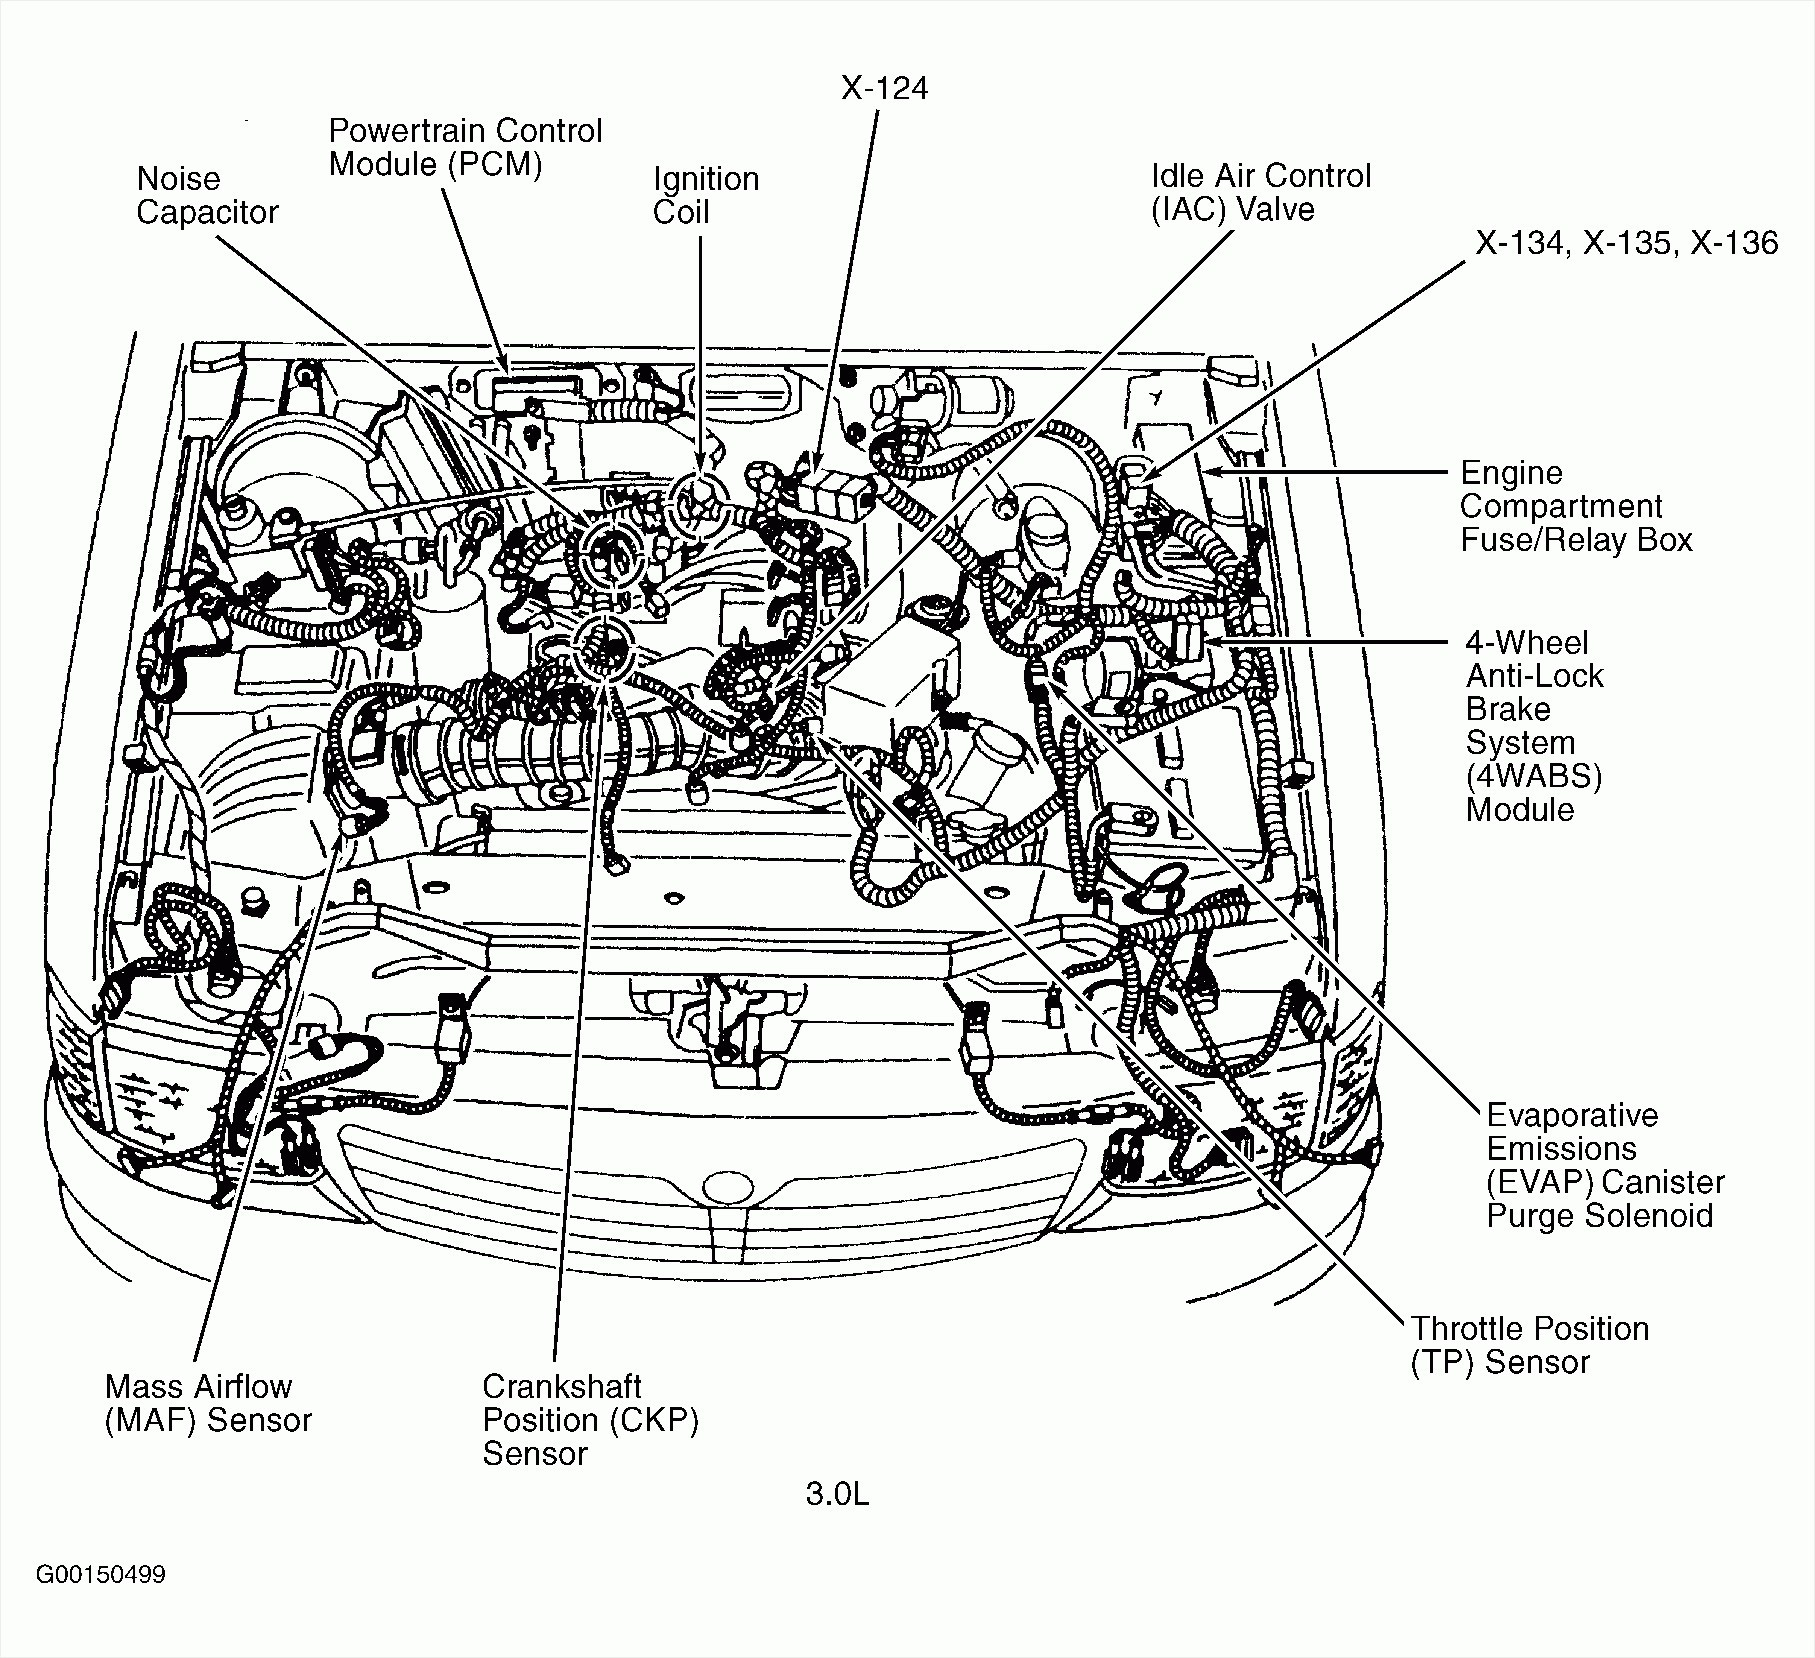 2003 Chevy Venture Parts Diagram - Wiring Diagram Bookmark on